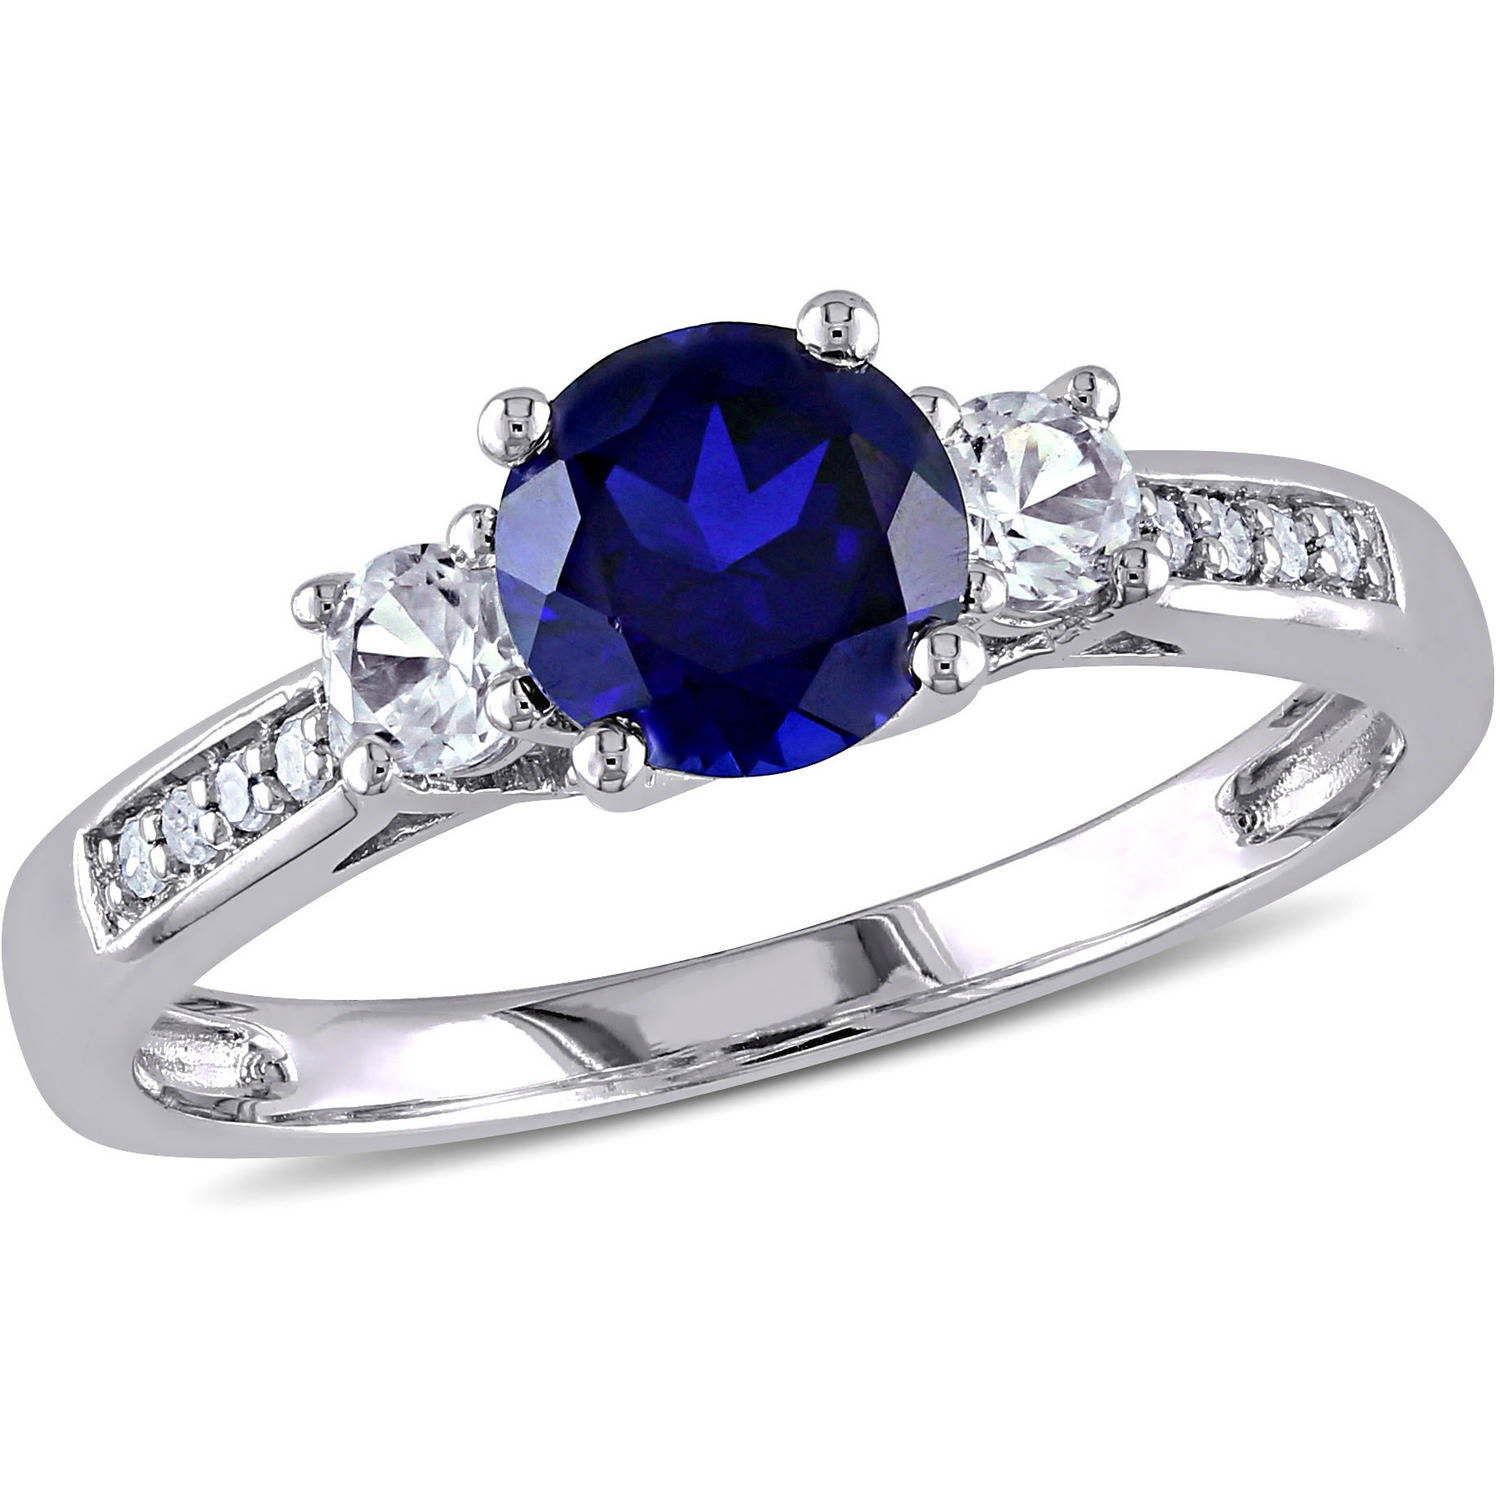 Tangelo 1-1/3 Carat T.G.W. Created Blue and White Sapphire Diamond-Accent 10kt White Gold Three Stone Ring